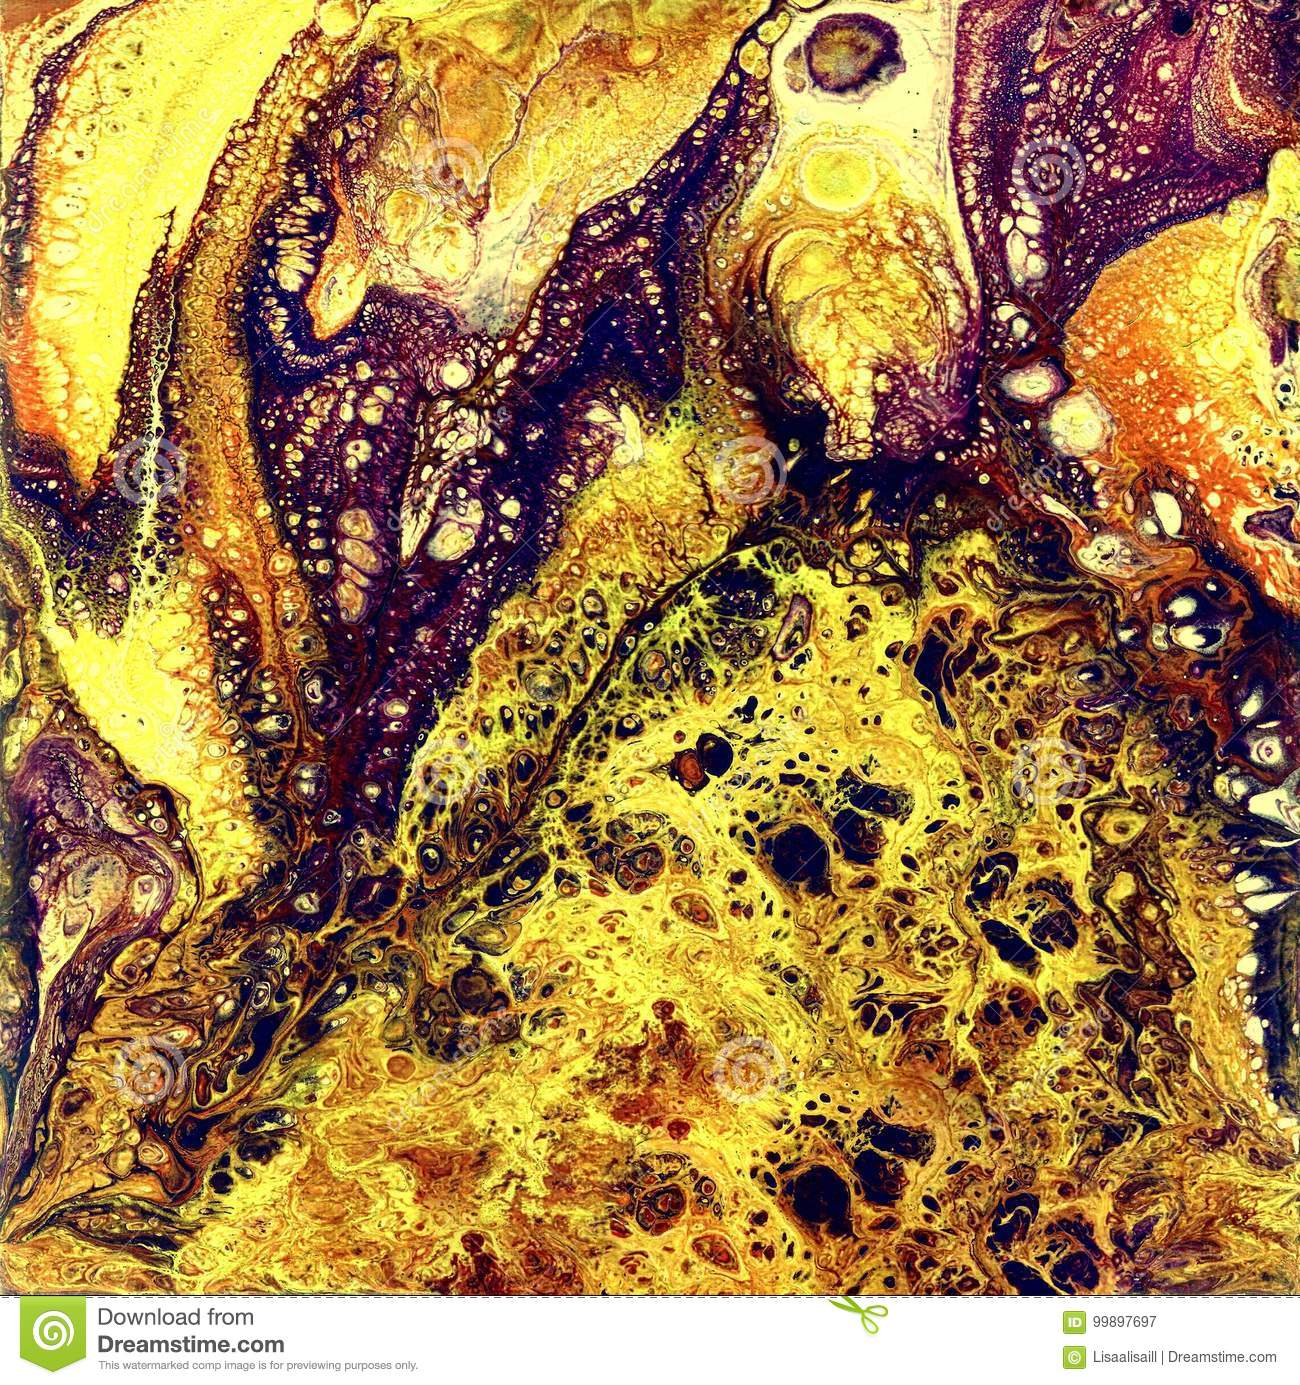 Liguid watercolor and ink abstract gold painting. Wet panted illustration, abstract background and wallpaper. Yellow